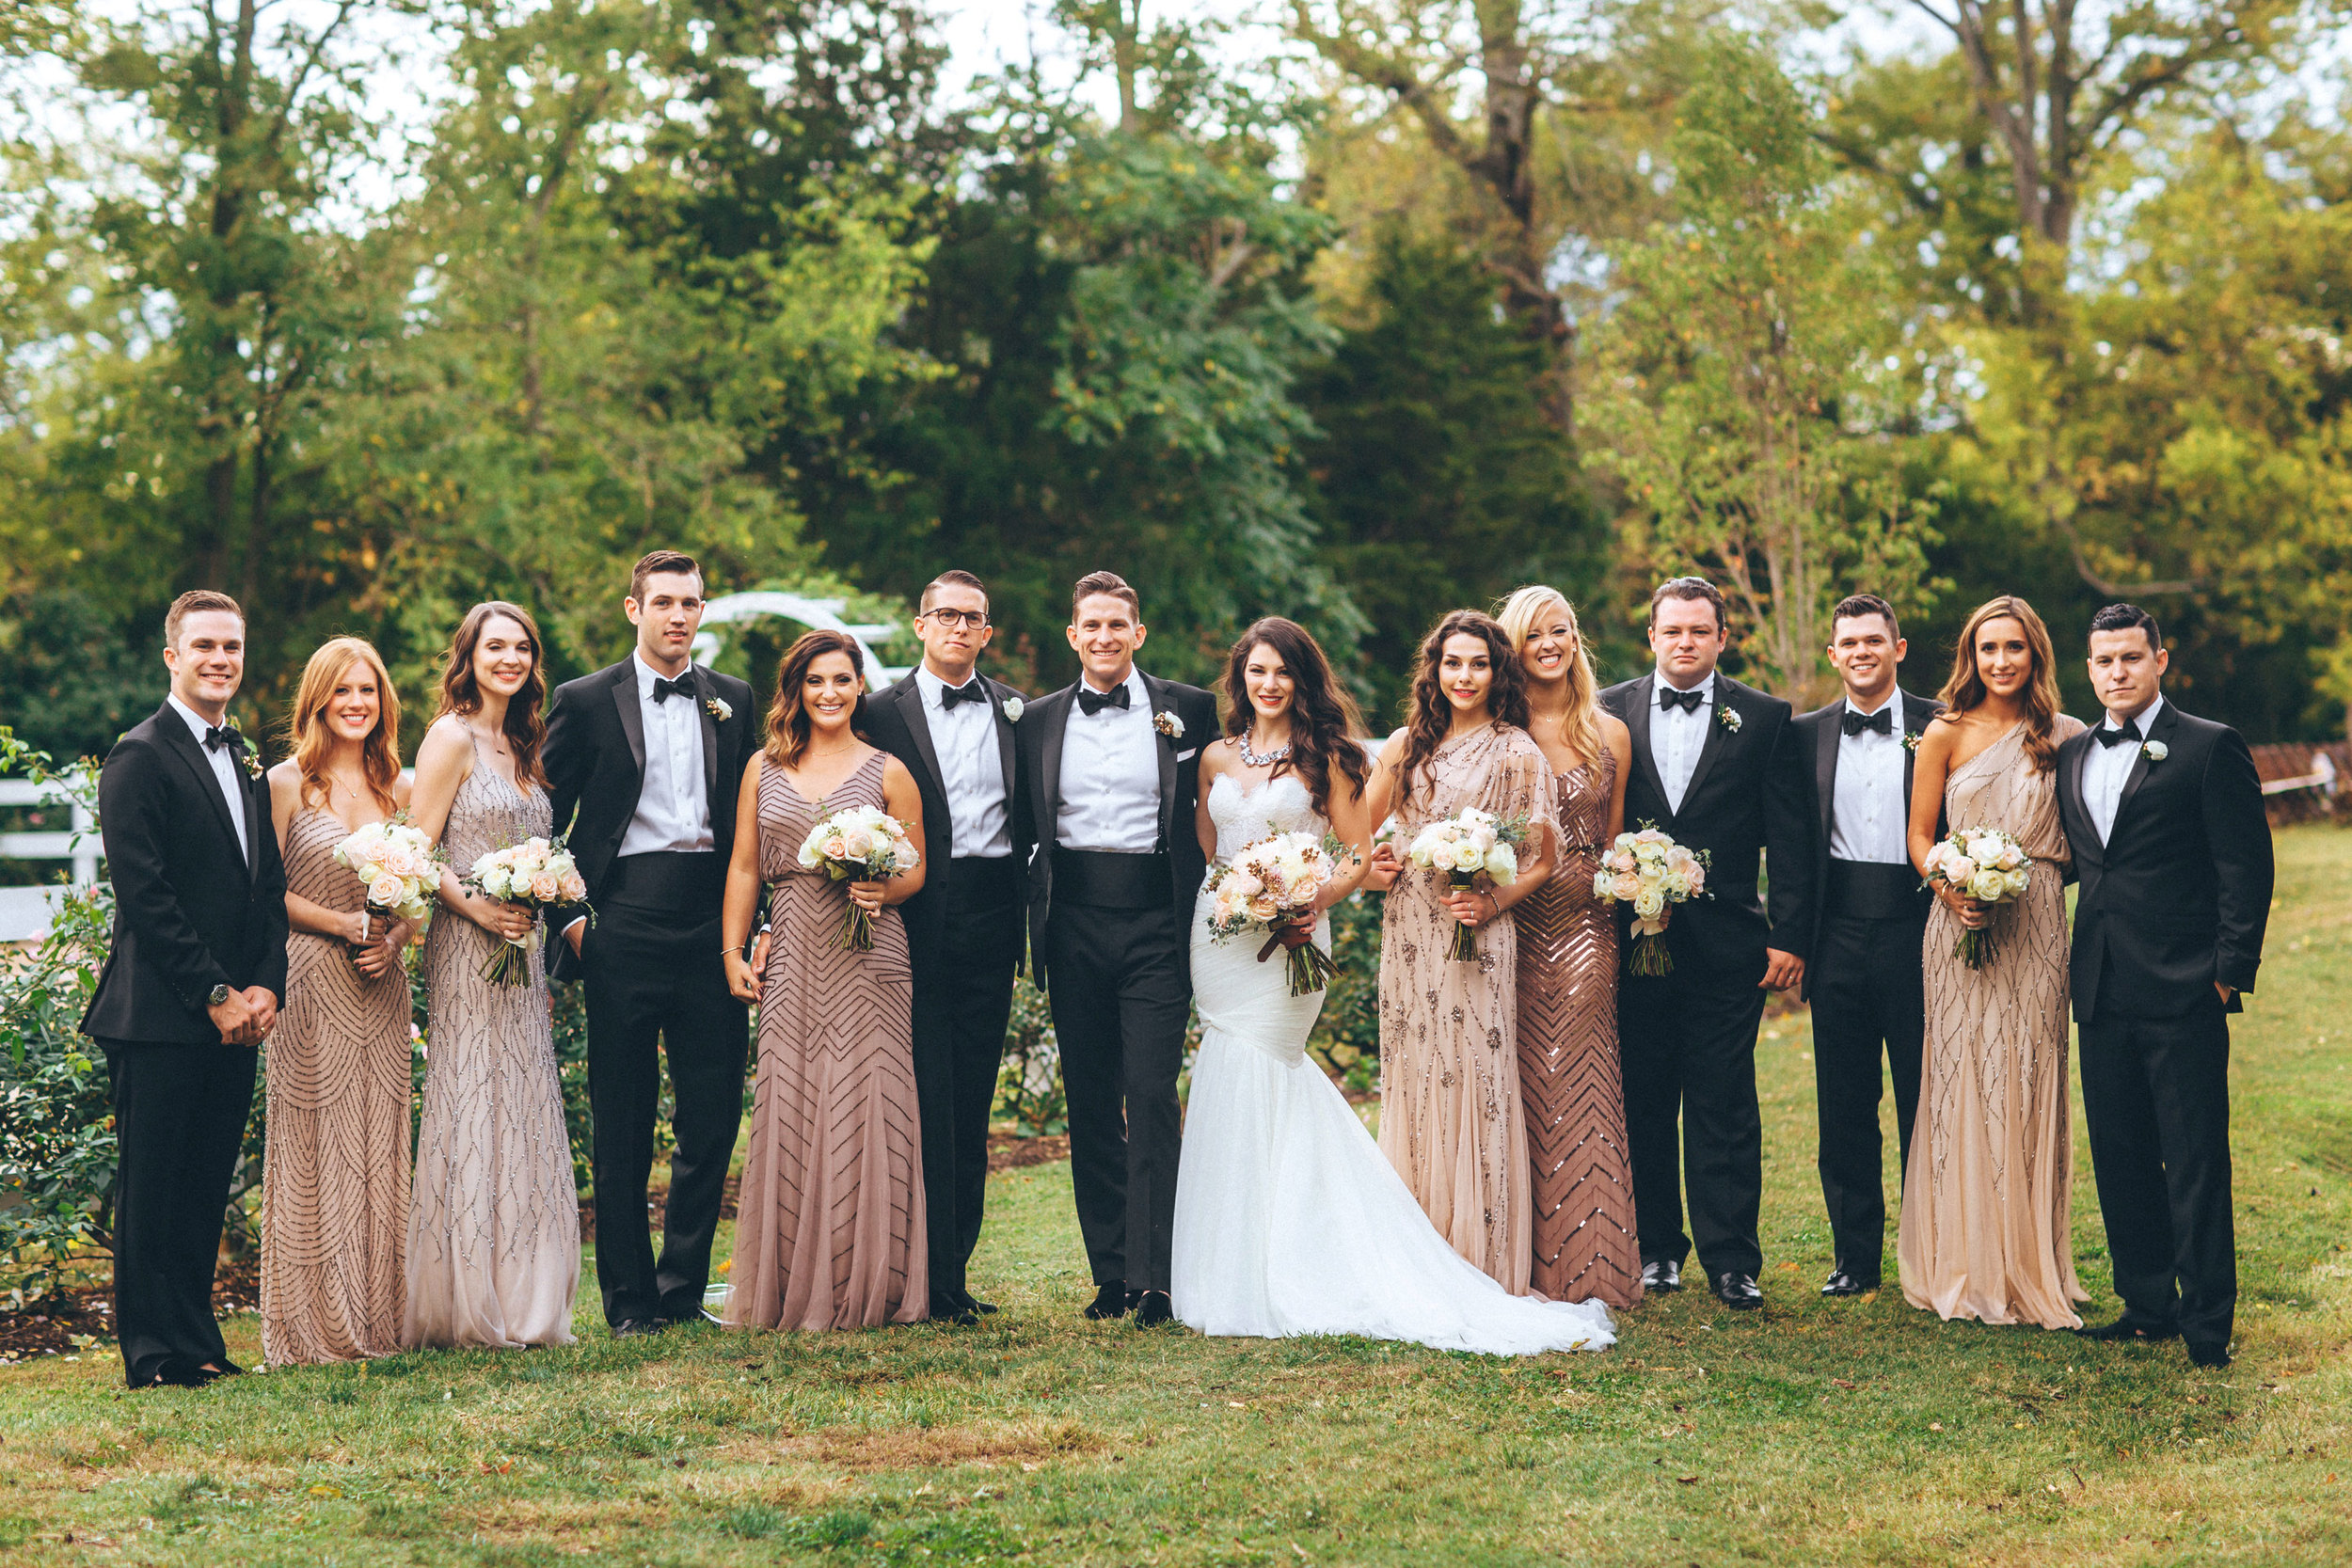 Me & Mr. Jones Wedding, Black Tie Wedding, Bridesmaids wearing Adrianna Papell Beaded Dresses, Embellished Bridesmaids Dresses, Black Tie Wedding in Nashville, Wedding Party Photo